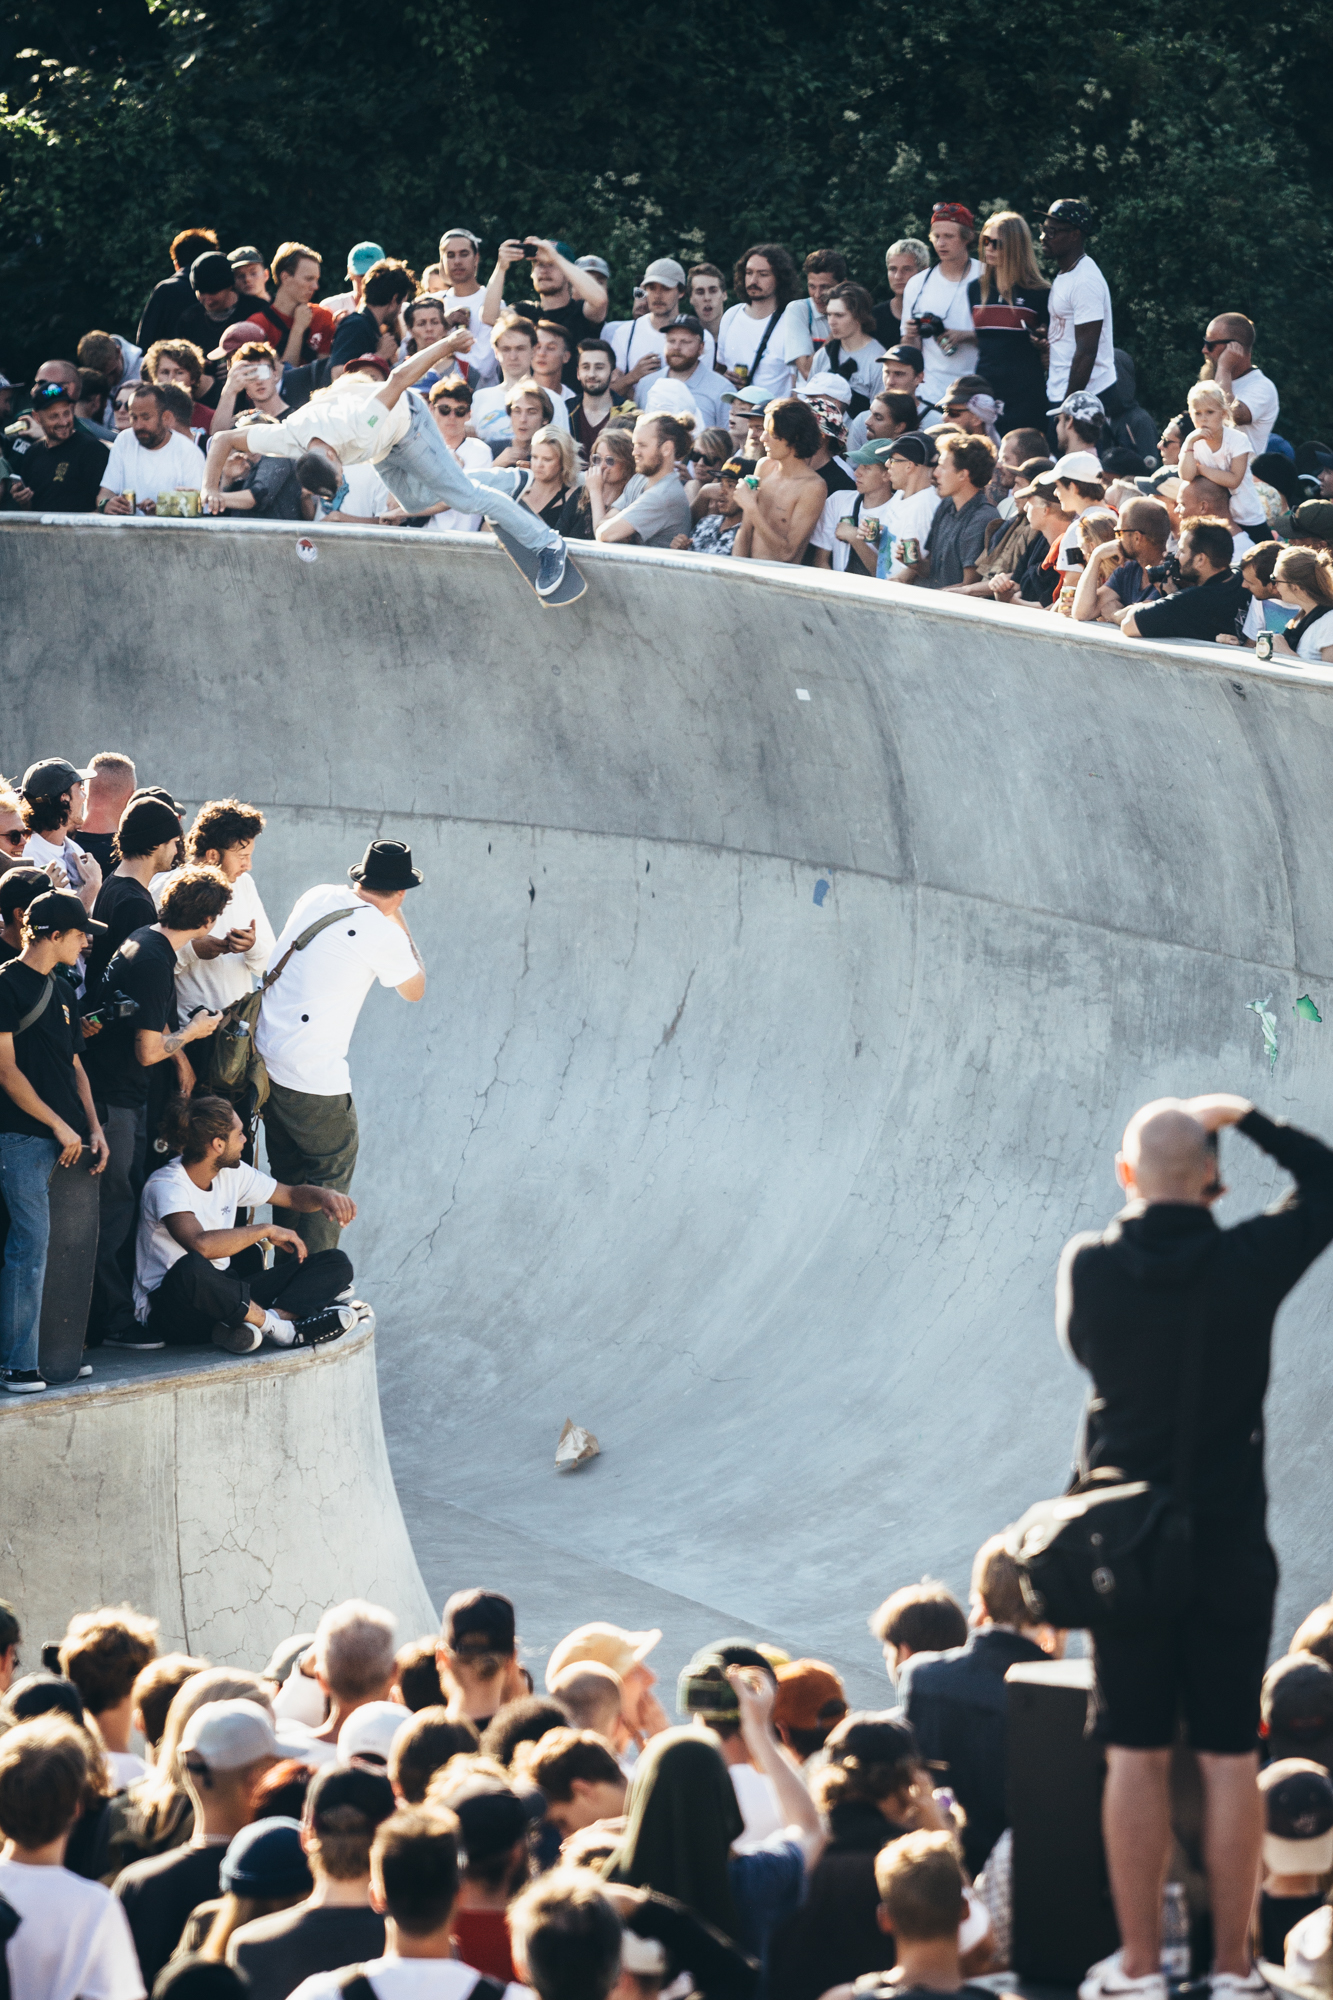 Rune Glifberg, backside smith grind at Copenhagen Open 2017. Photo: James Griffiths